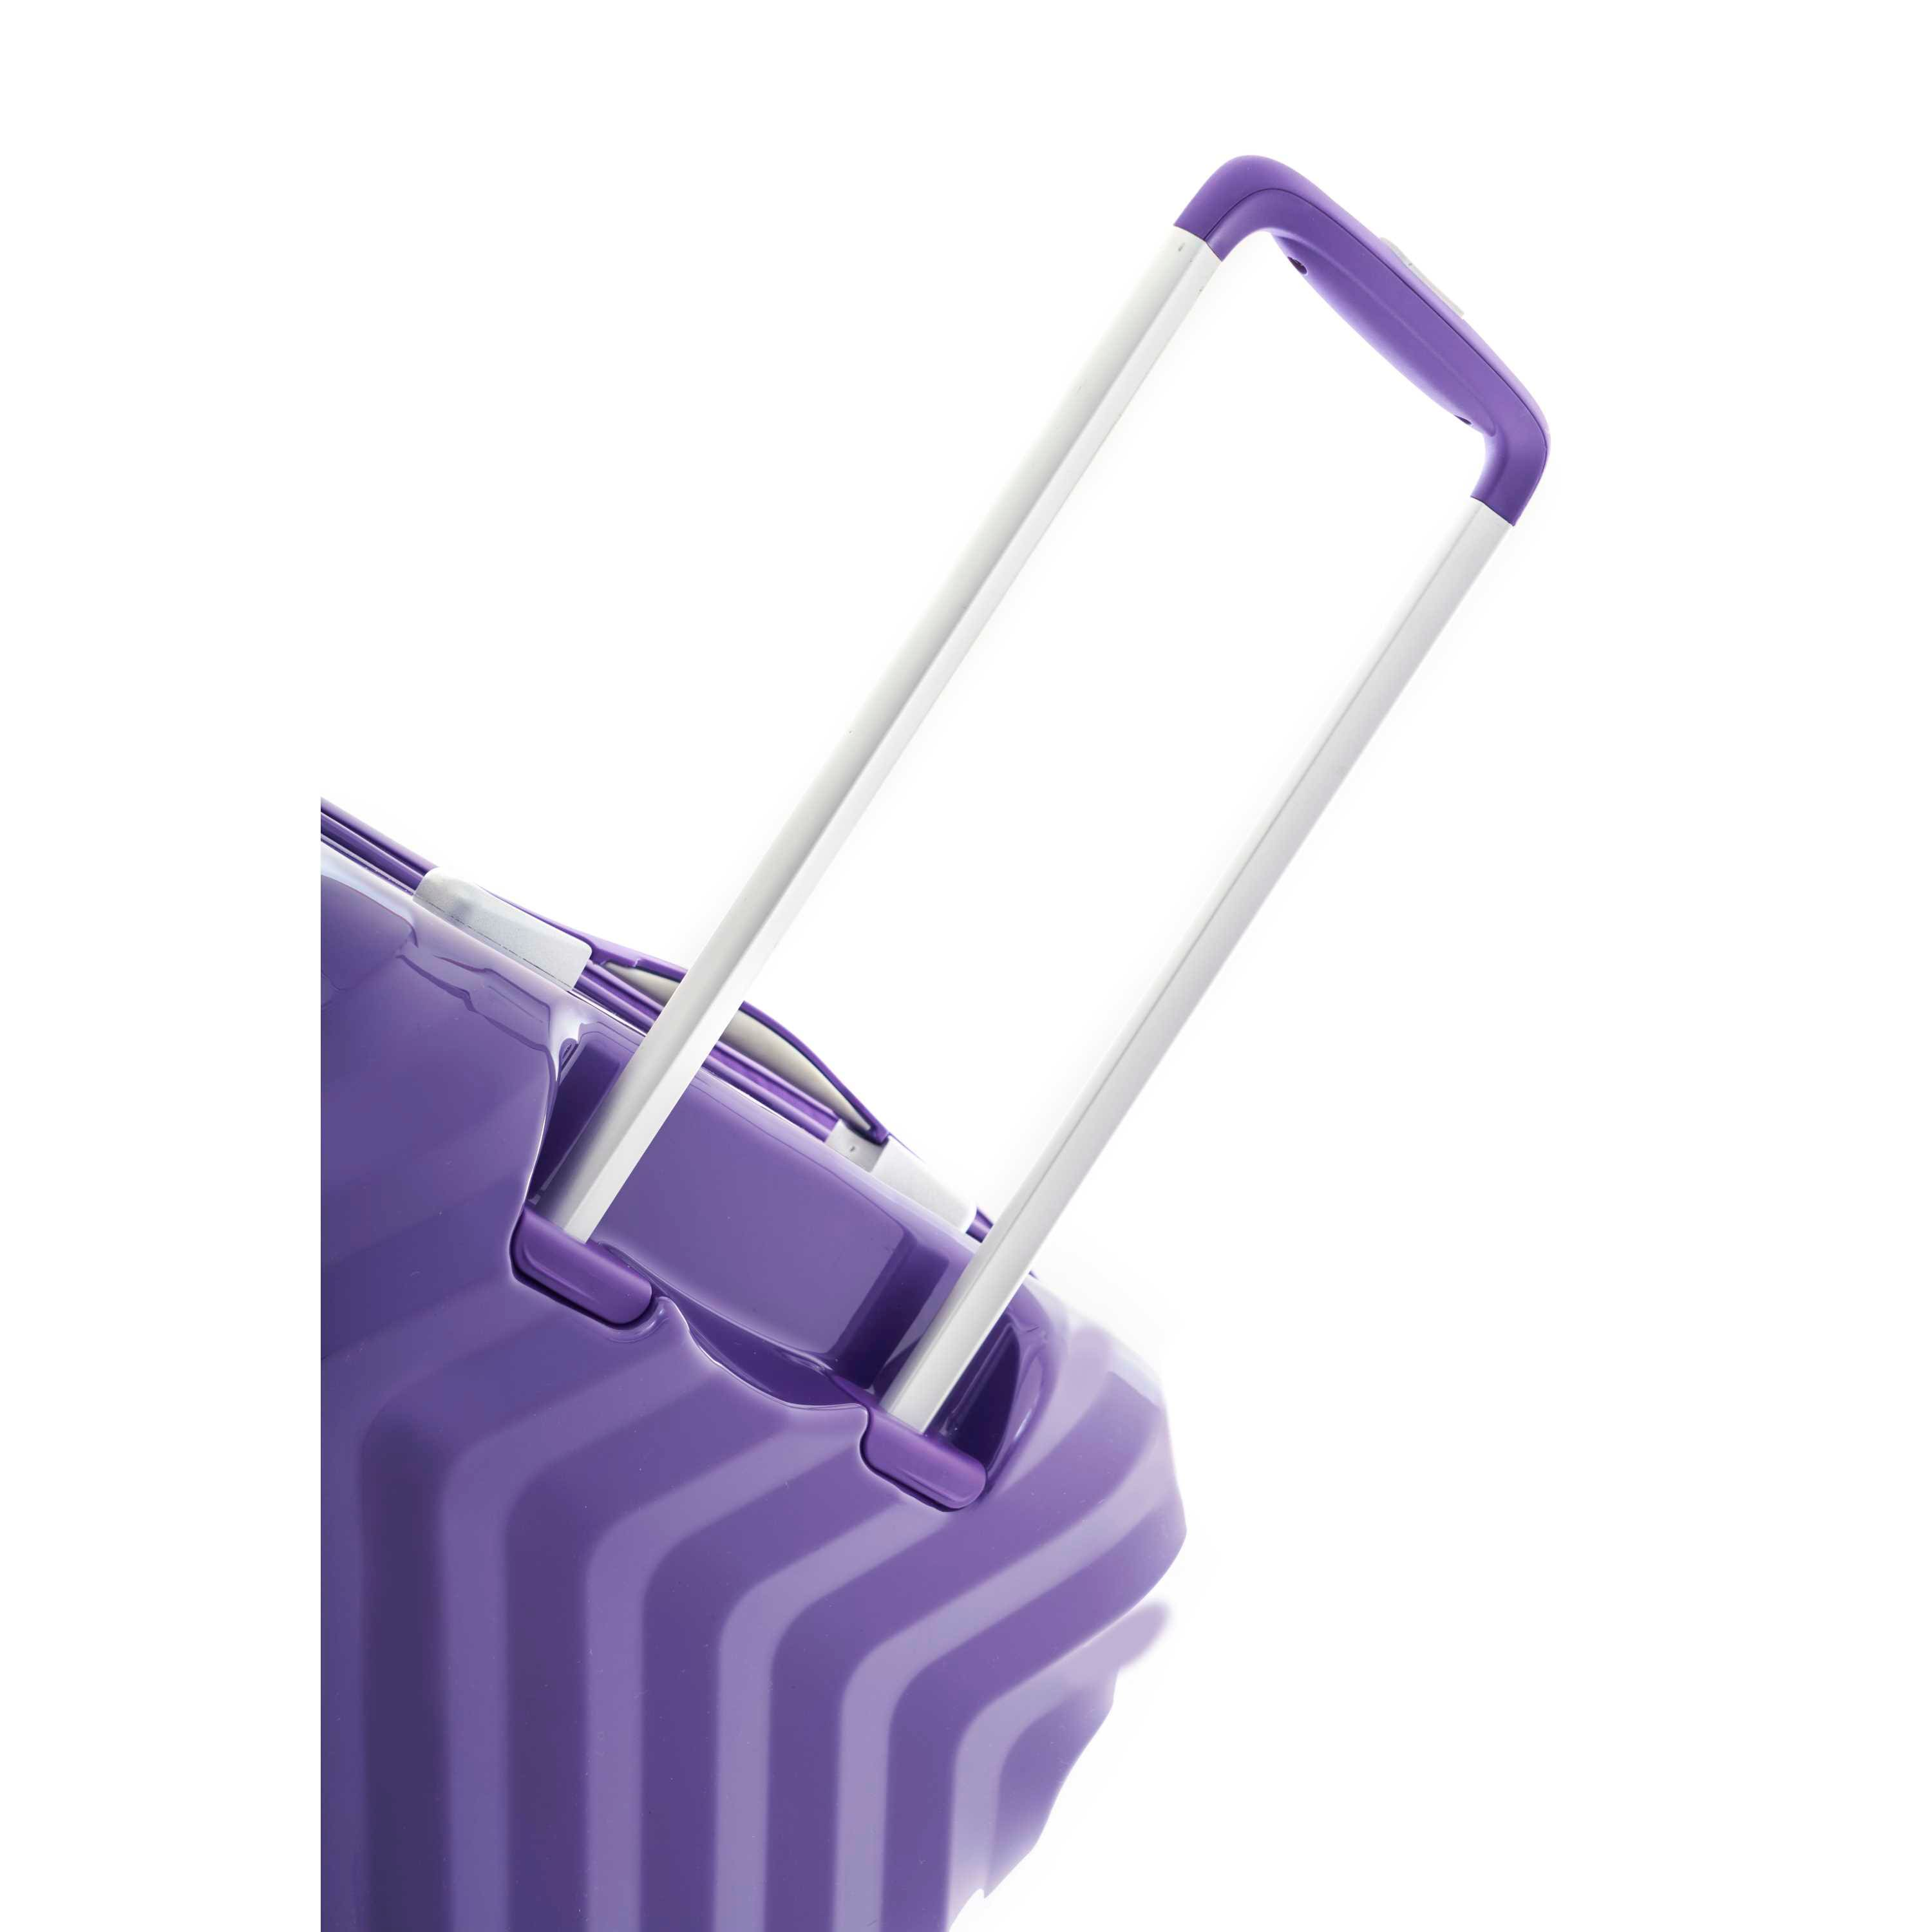 American Tourister Z-Lite DLX Spinner Luggage $49.99 + Free Shipping